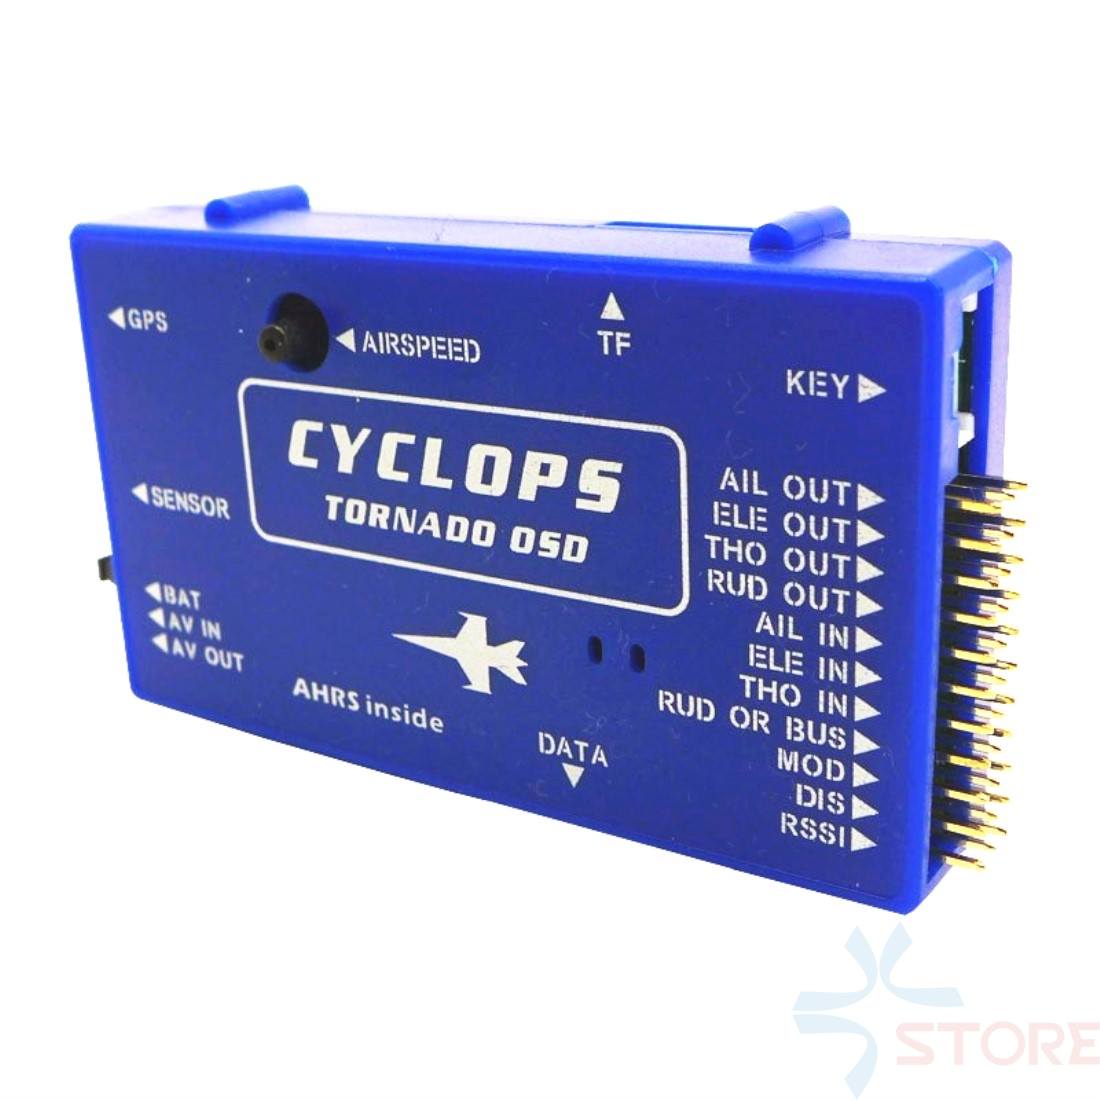 CYCLOPS TORNADO OSD System W/ GPS Latest Version V1.1 with 3D Flying / Airspeed Sensor for RC Airplane fpv s2 osd barometer version osd board read naza data phantom 2 iosd osd barometer with 8m gps module